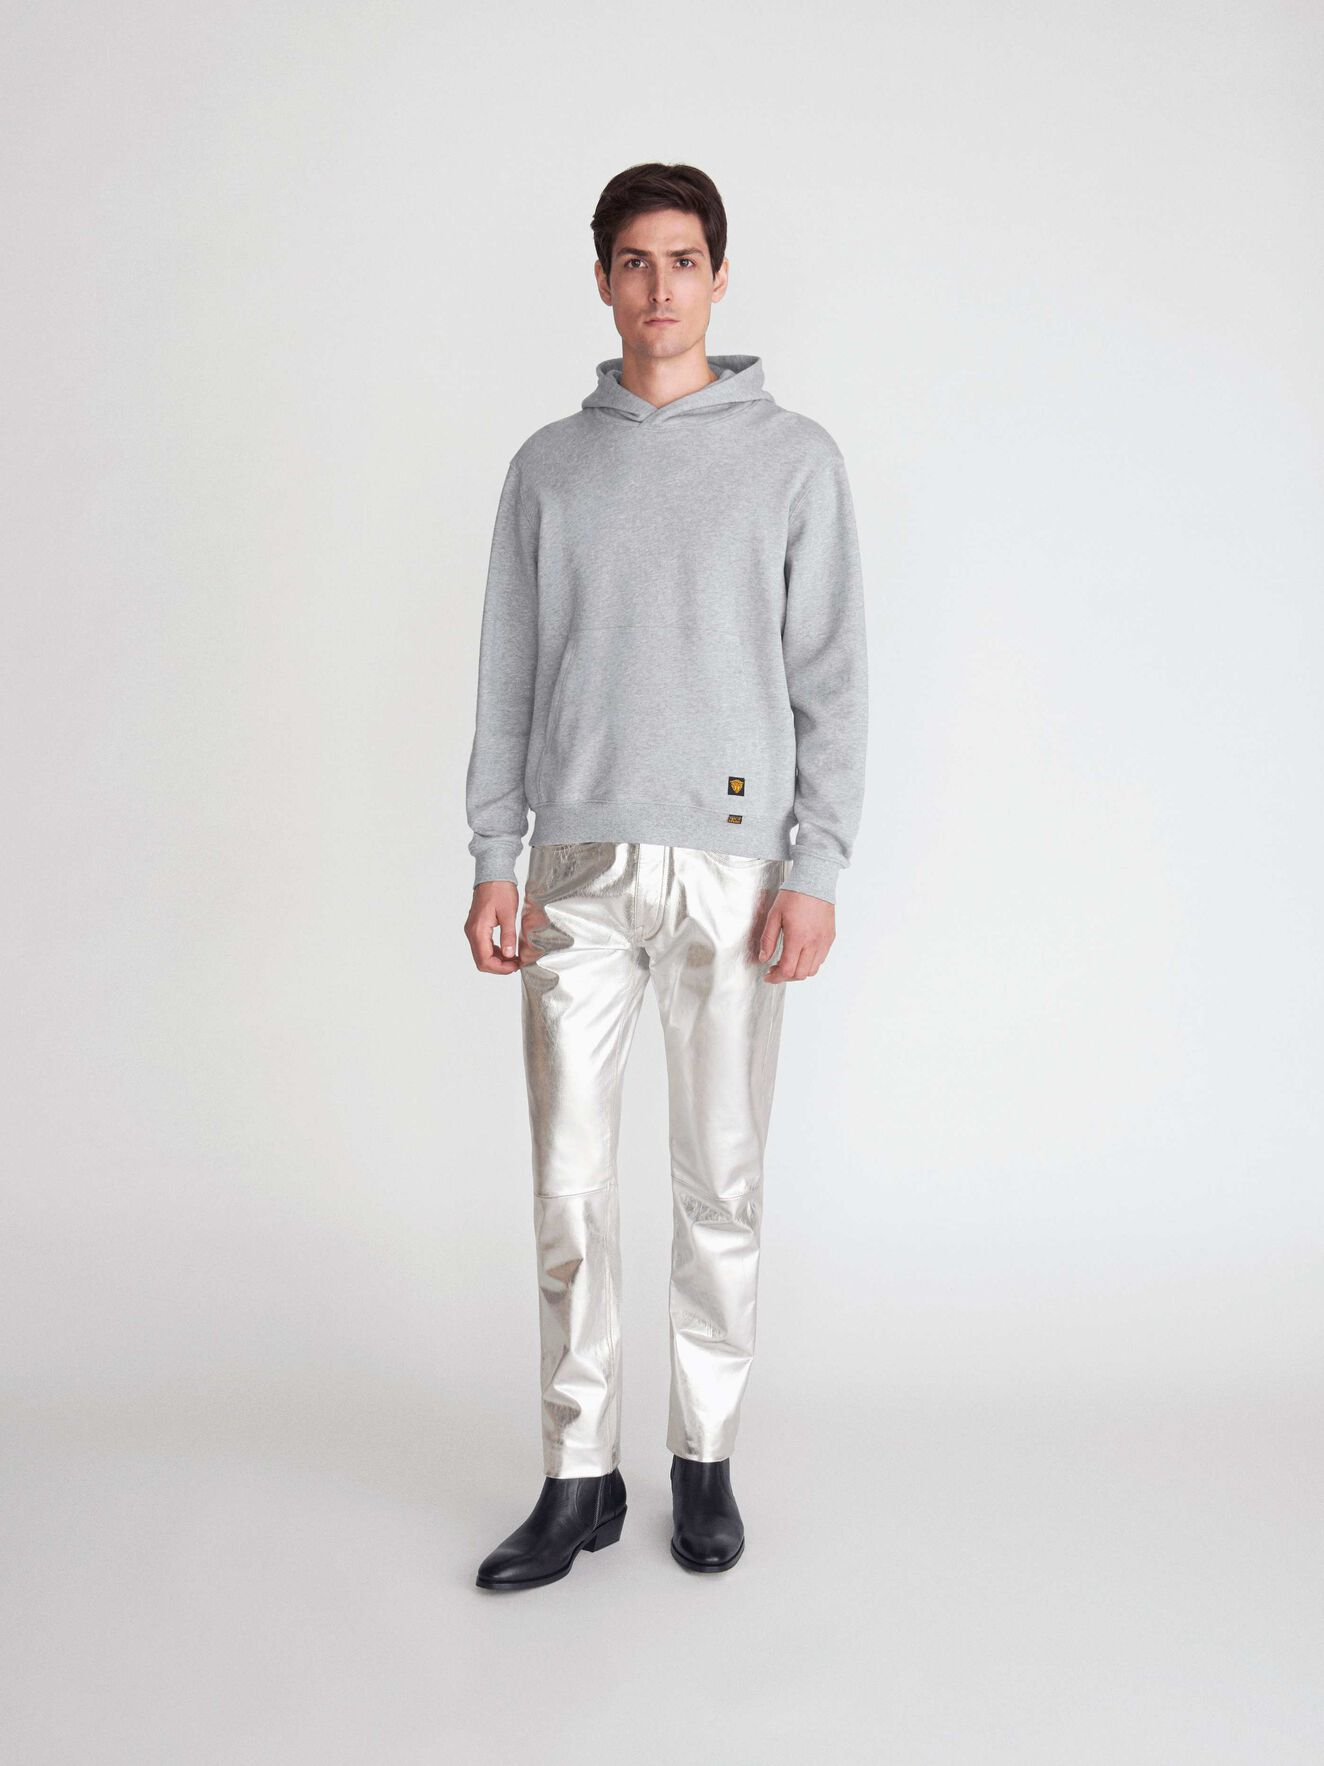 Eliaz Kapuzensweatshirt in Grey melange from Tiger of Sweden